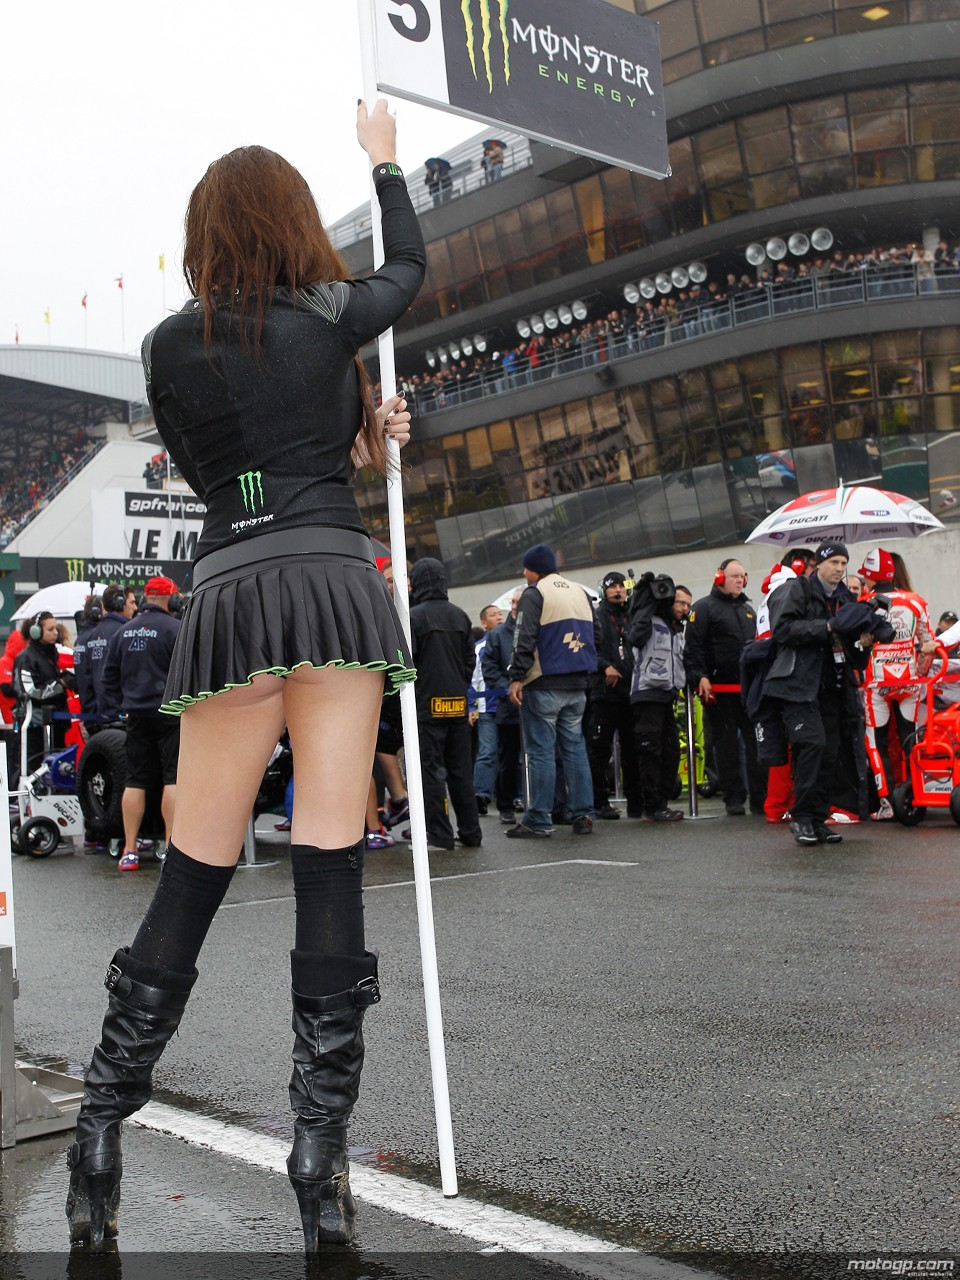 2013 Motogp Grid Girl For Marc Marquez Needed Autoevolution